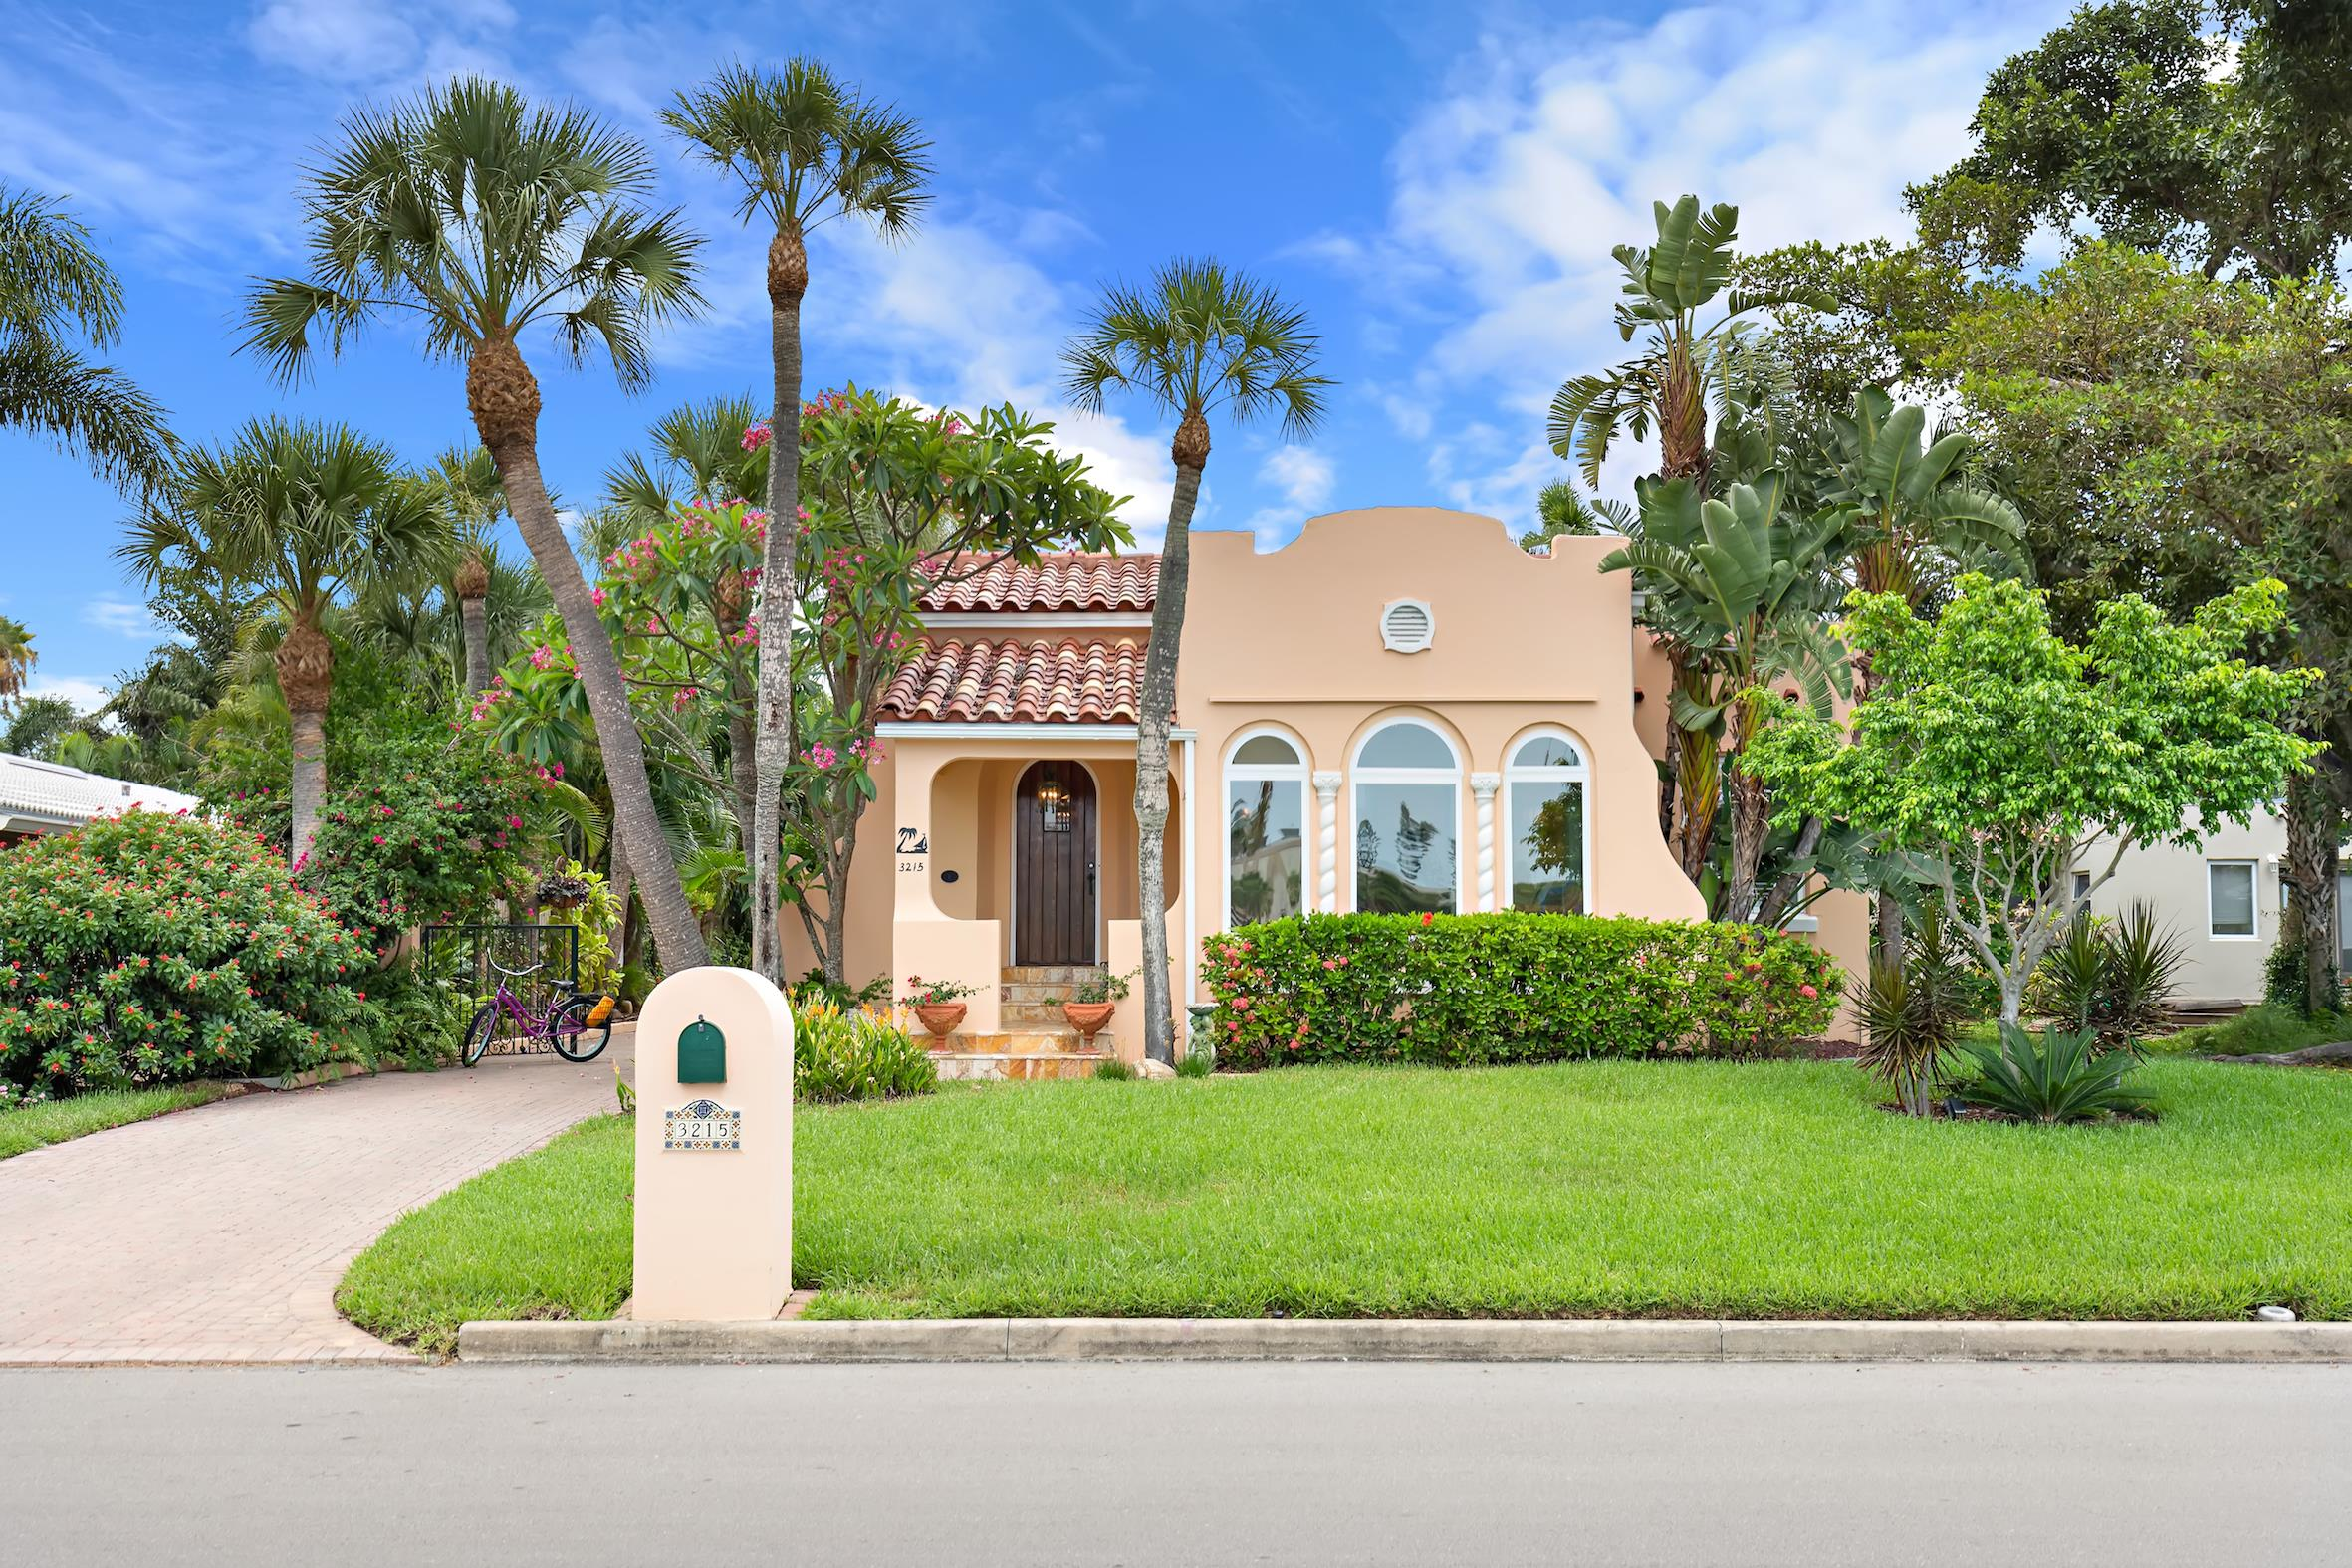 HISTORICAL LANDMARK HOME IN ST. PETE BEACH HITS THE MARKET